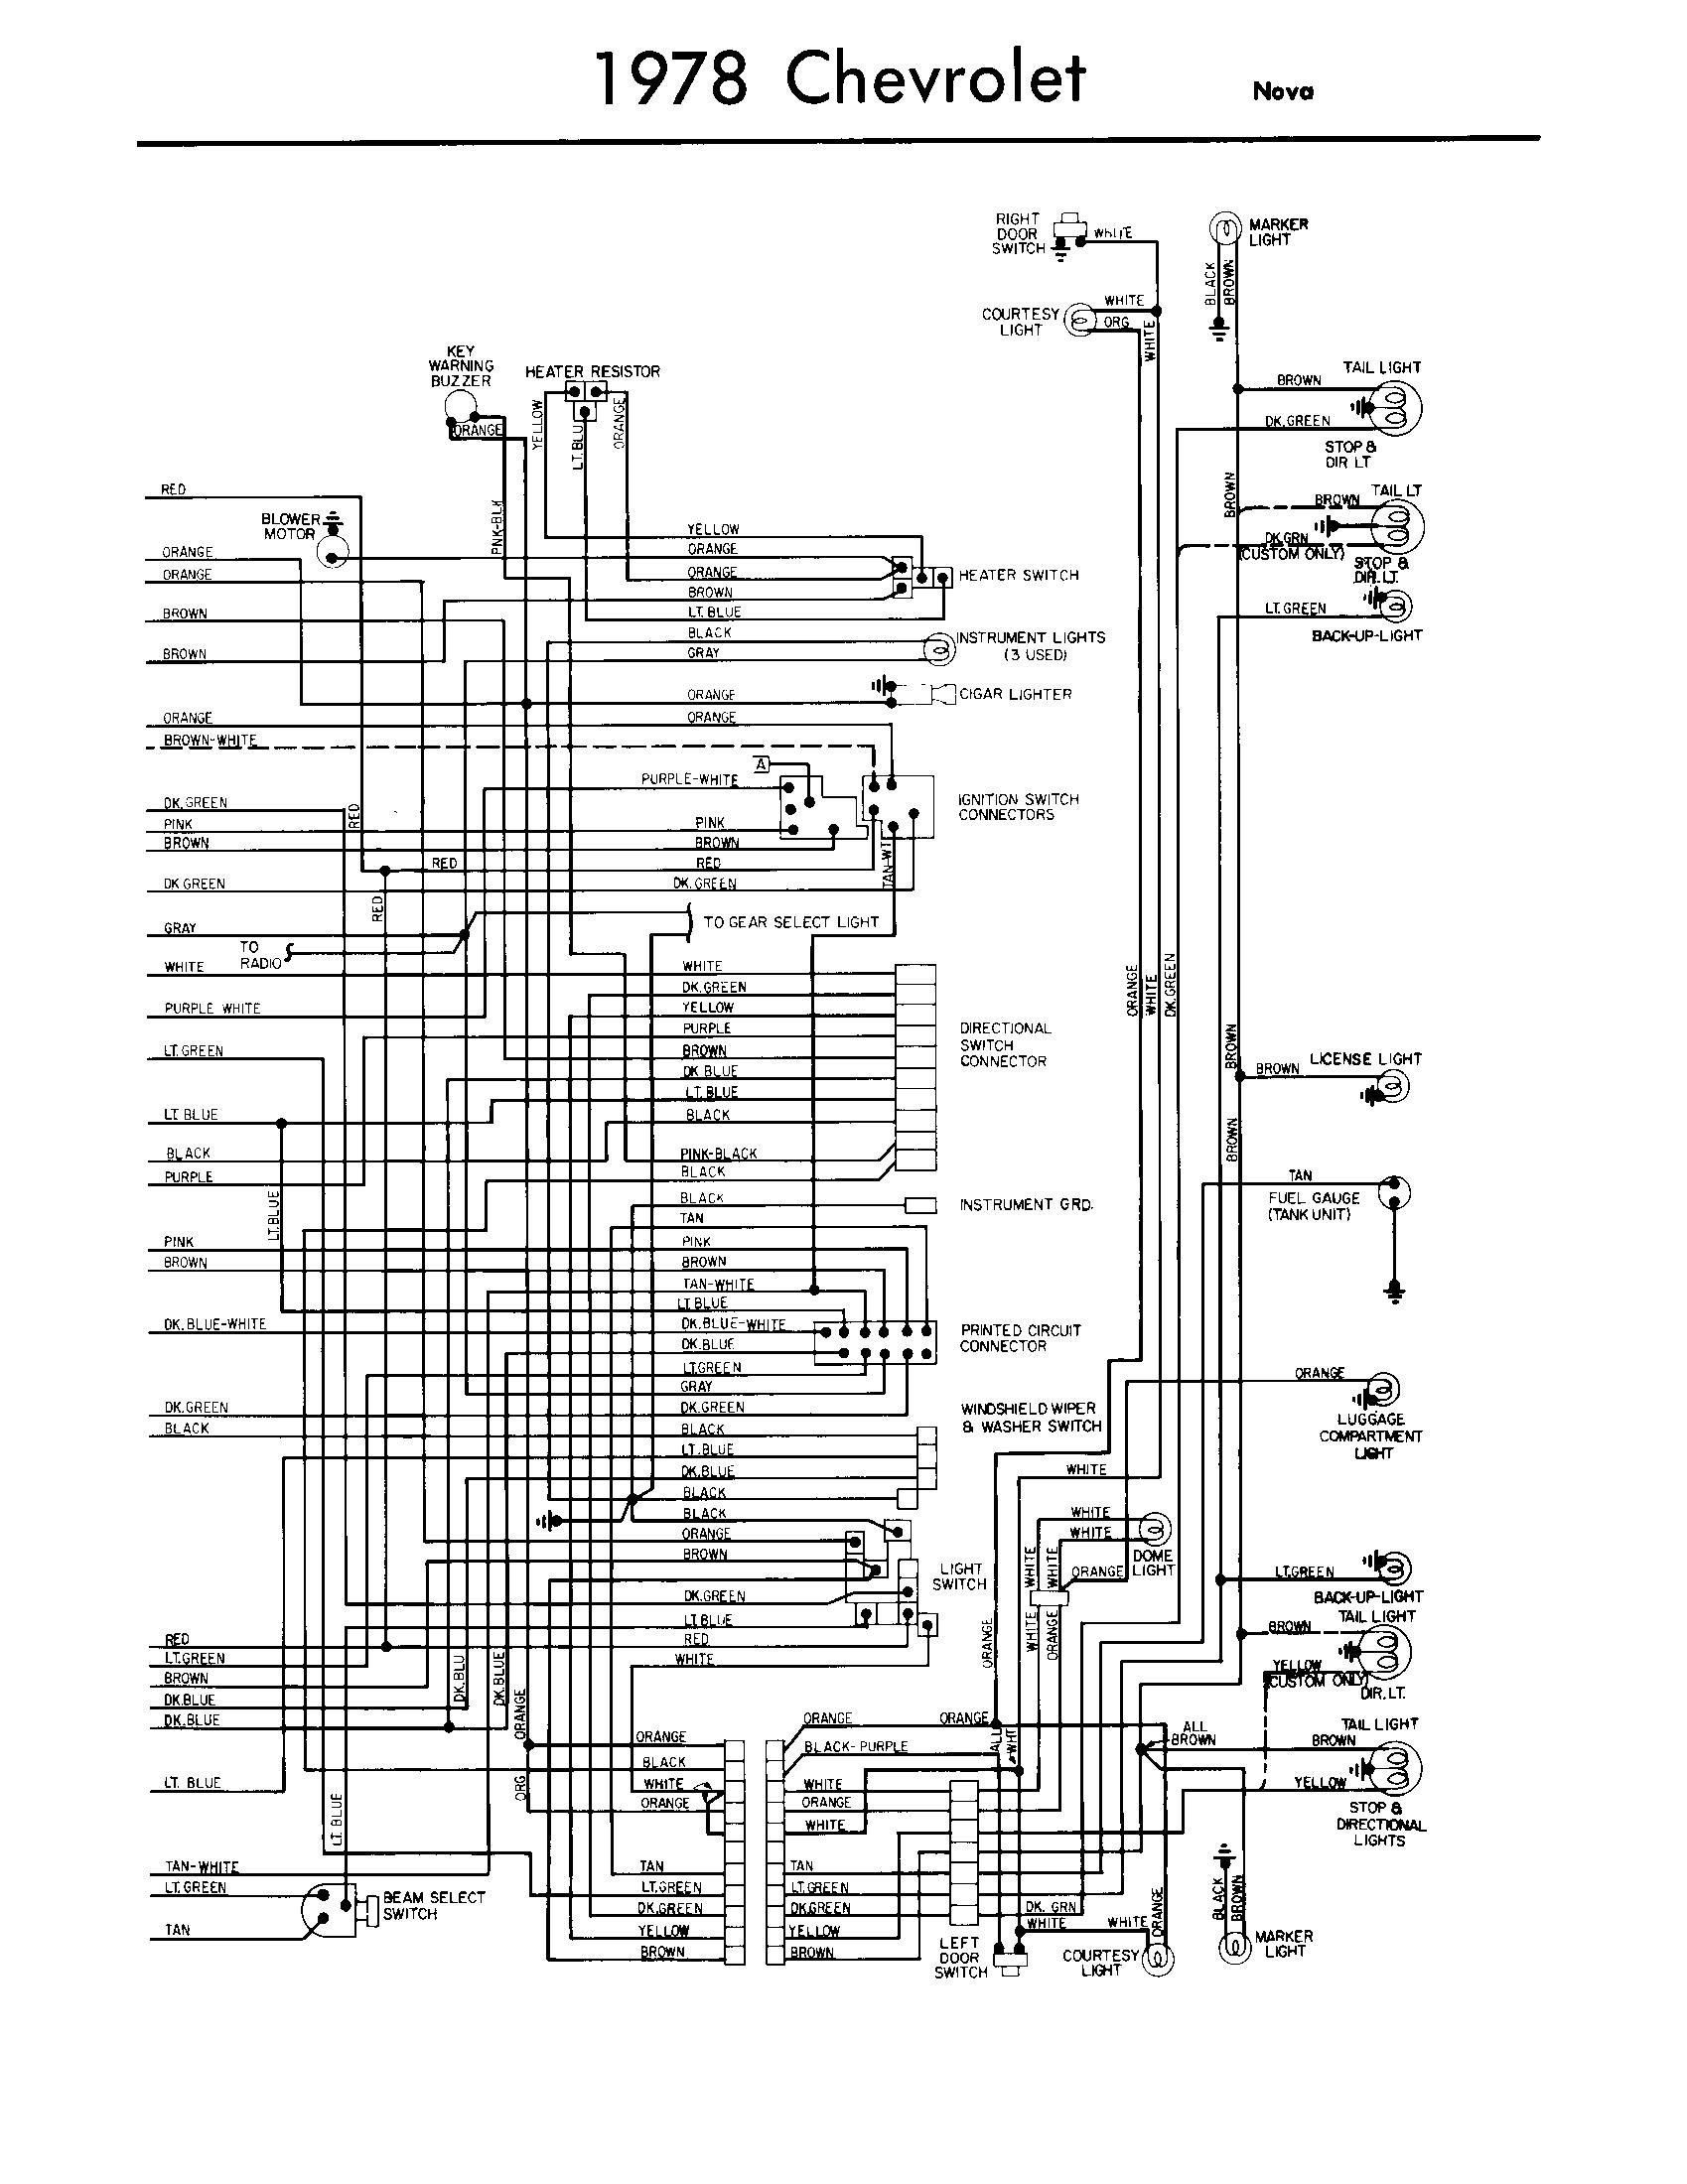 [SCHEMATICS_4JK]  1969 Chevrolet Corvette Wiring Diagram - A6t11dz2d Leeson 3 Phase Motor  Wire Diagram for Wiring Diagram Schematics | A6t11dz2d Leeson 3 Phase Motor Wire Diagram |  | Wiring Diagram and Schematics